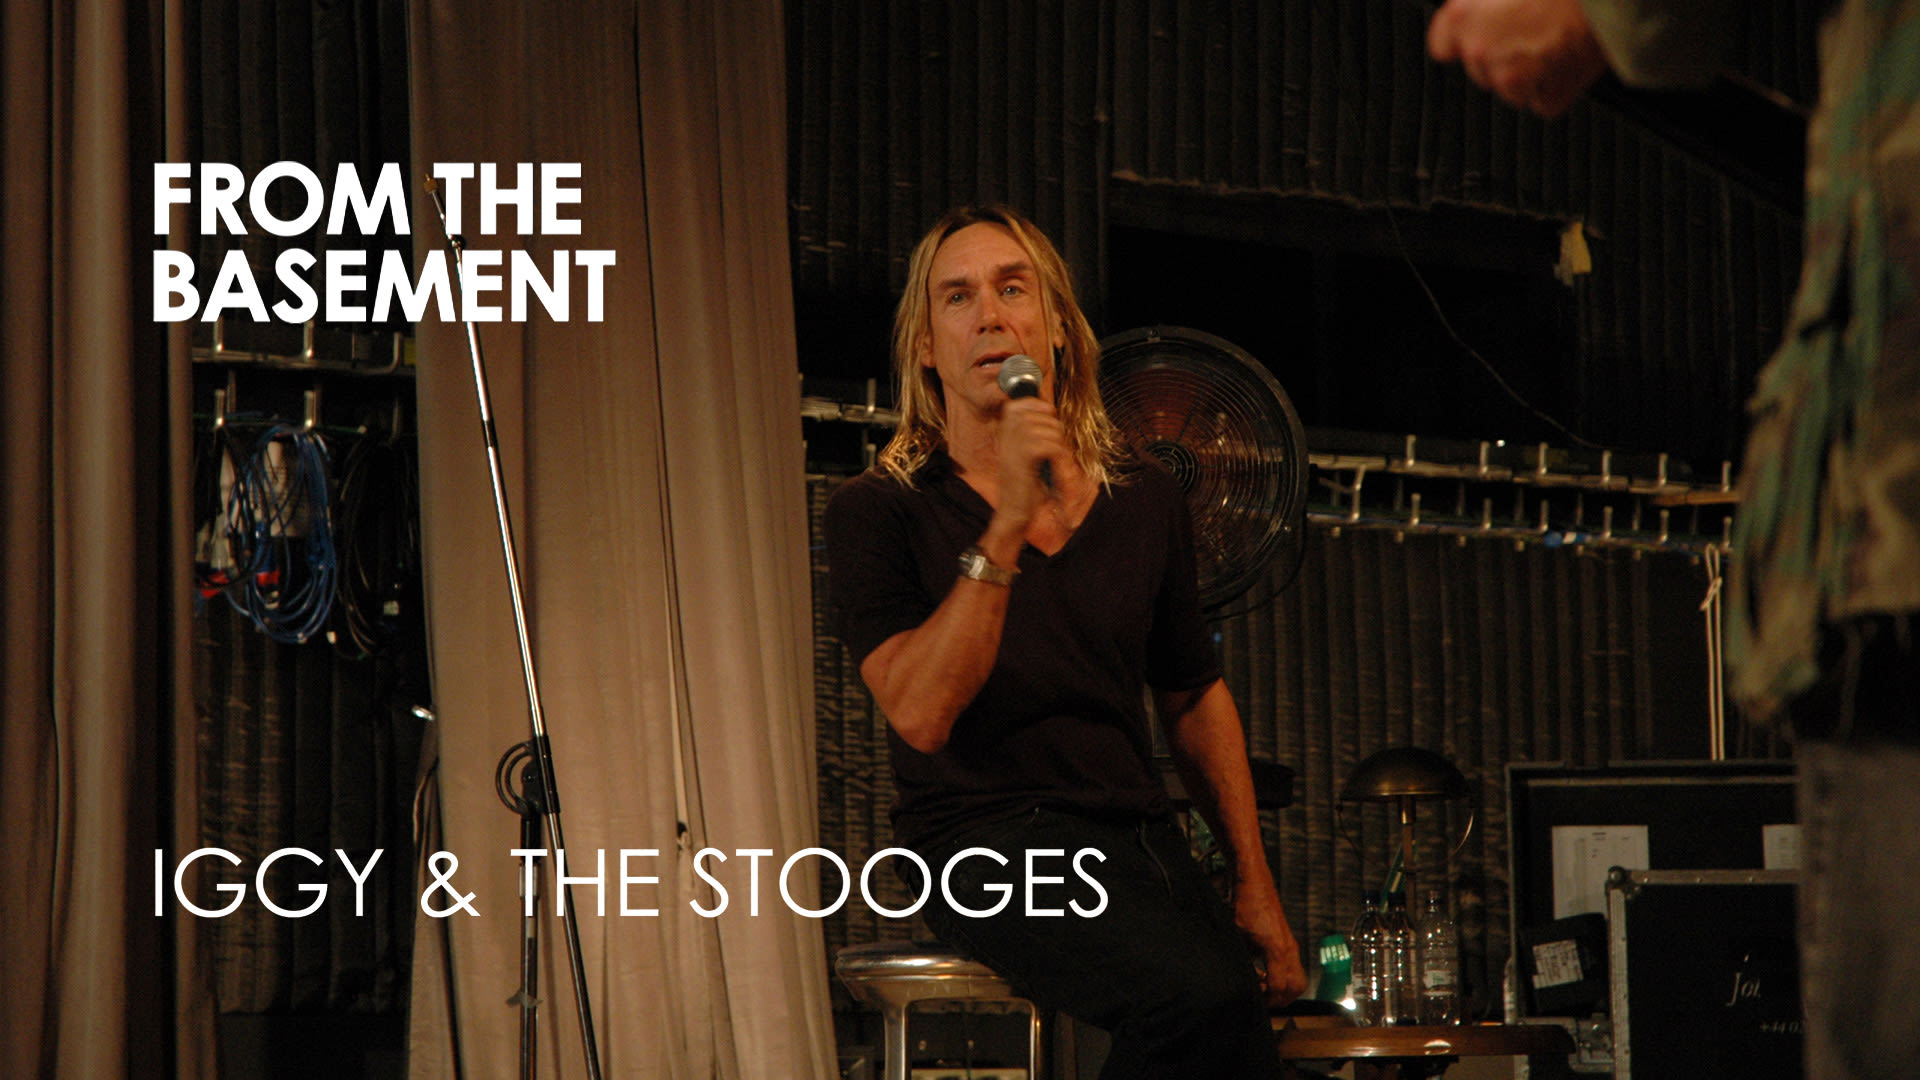 Iggy & The Stooges - From the Basement